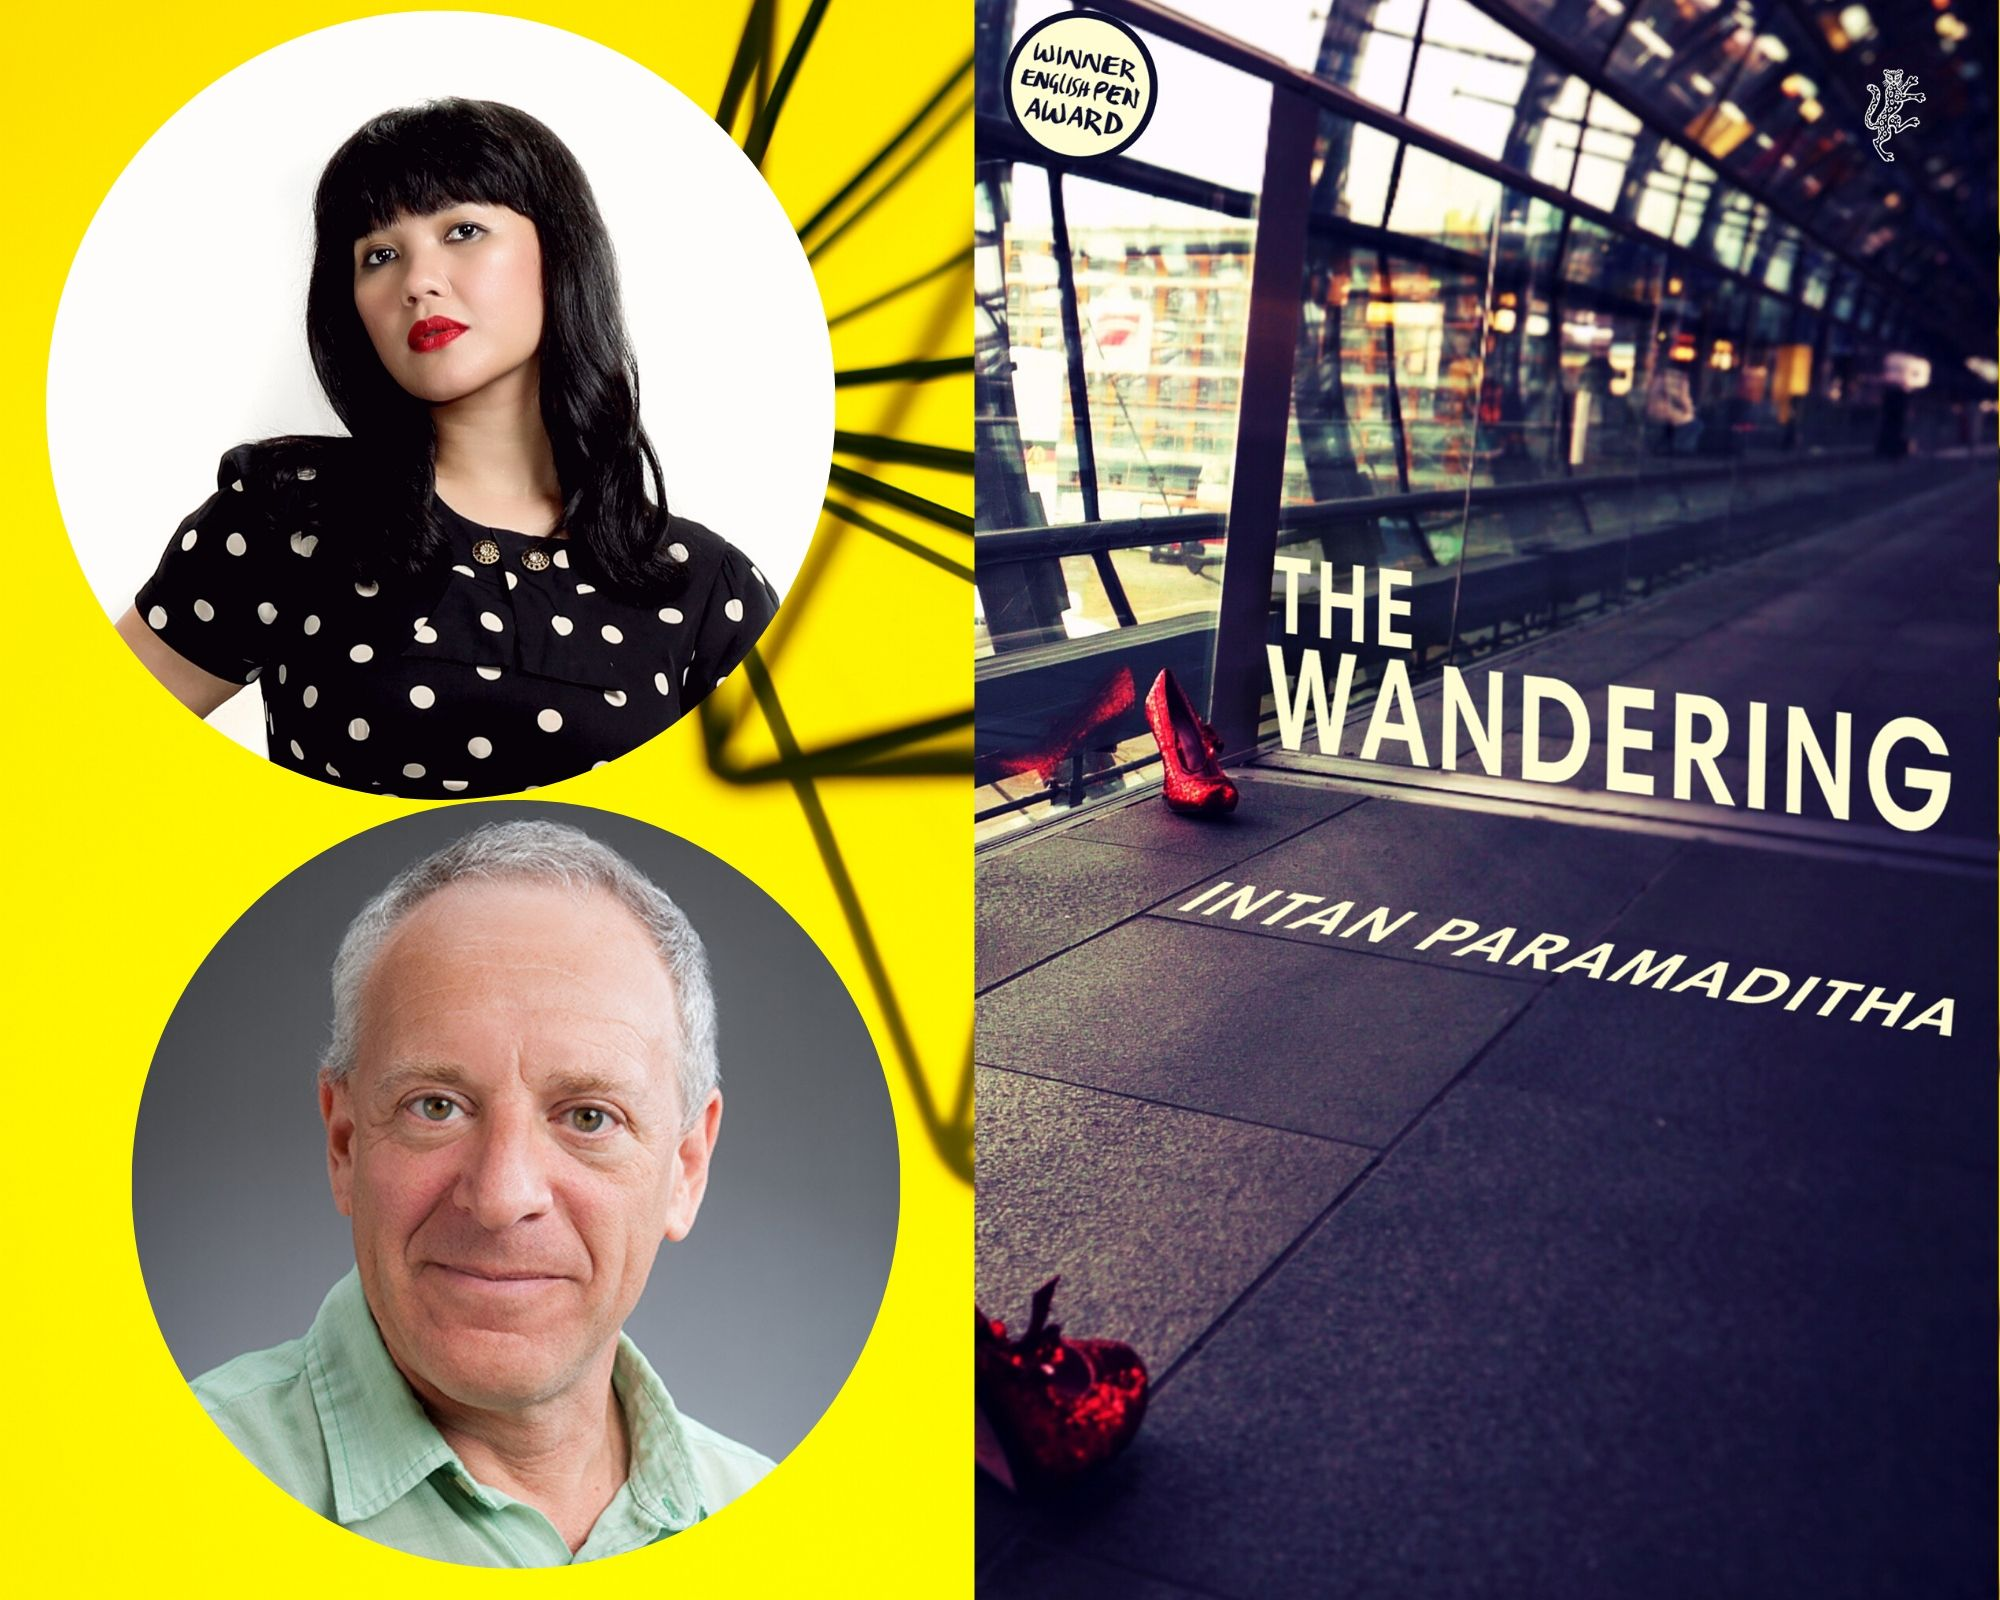 aaww.org: The Wandering: A Conversation between Stephen Epstein and Intan Paramaditha